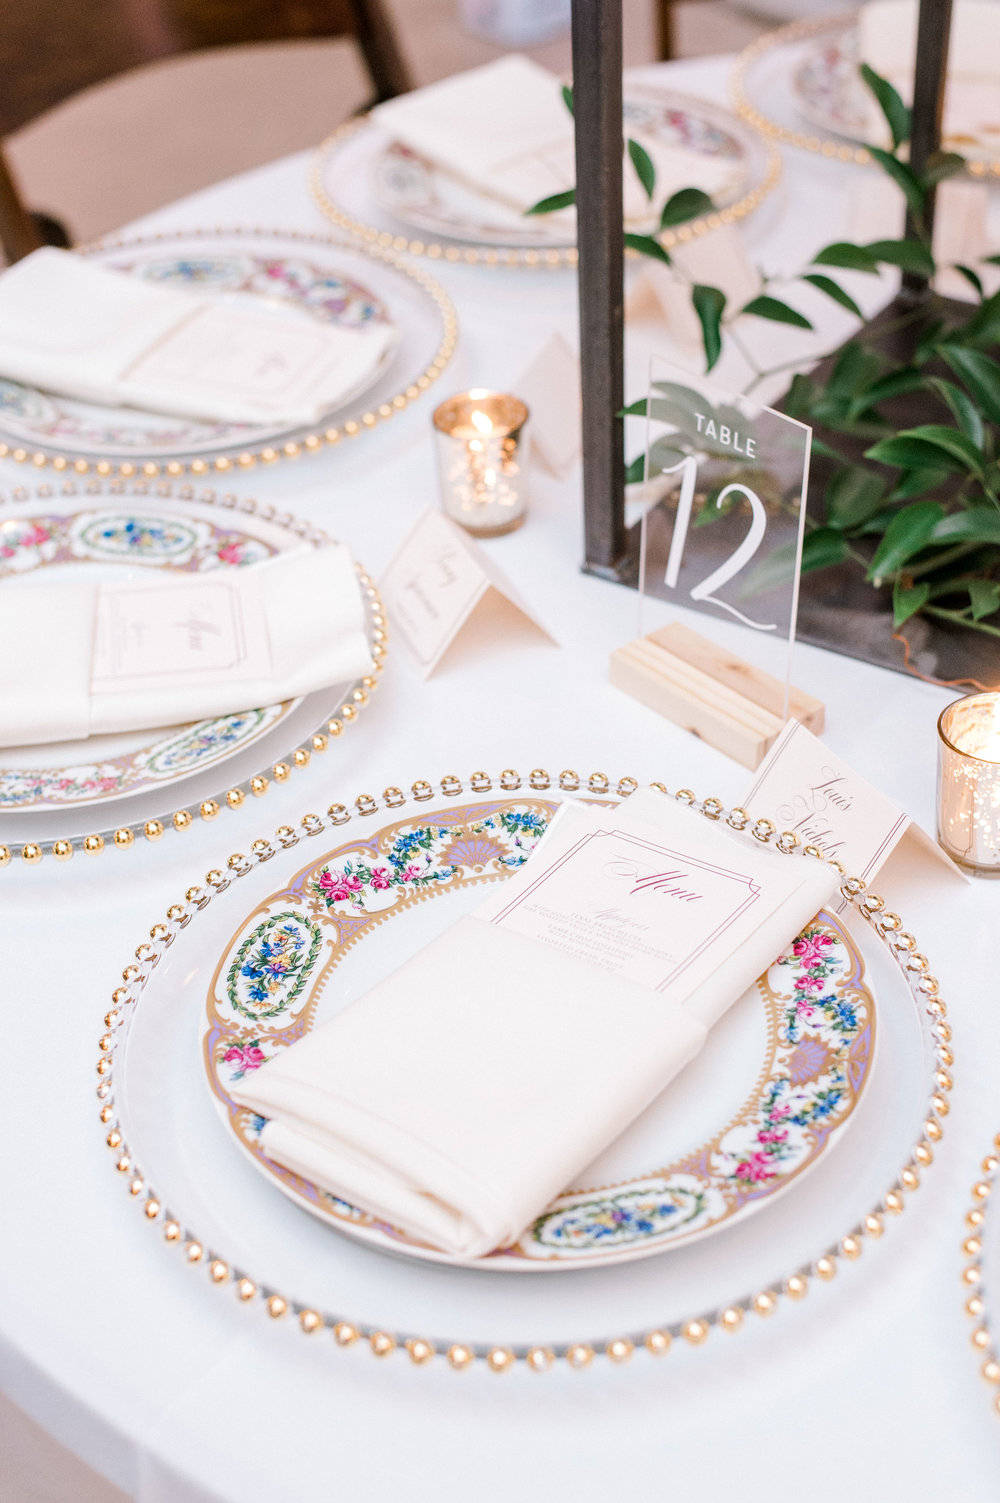 Vintage Fall Wedding Place Setting | Vintage Industrial Fort Worth Wedding Reception Design